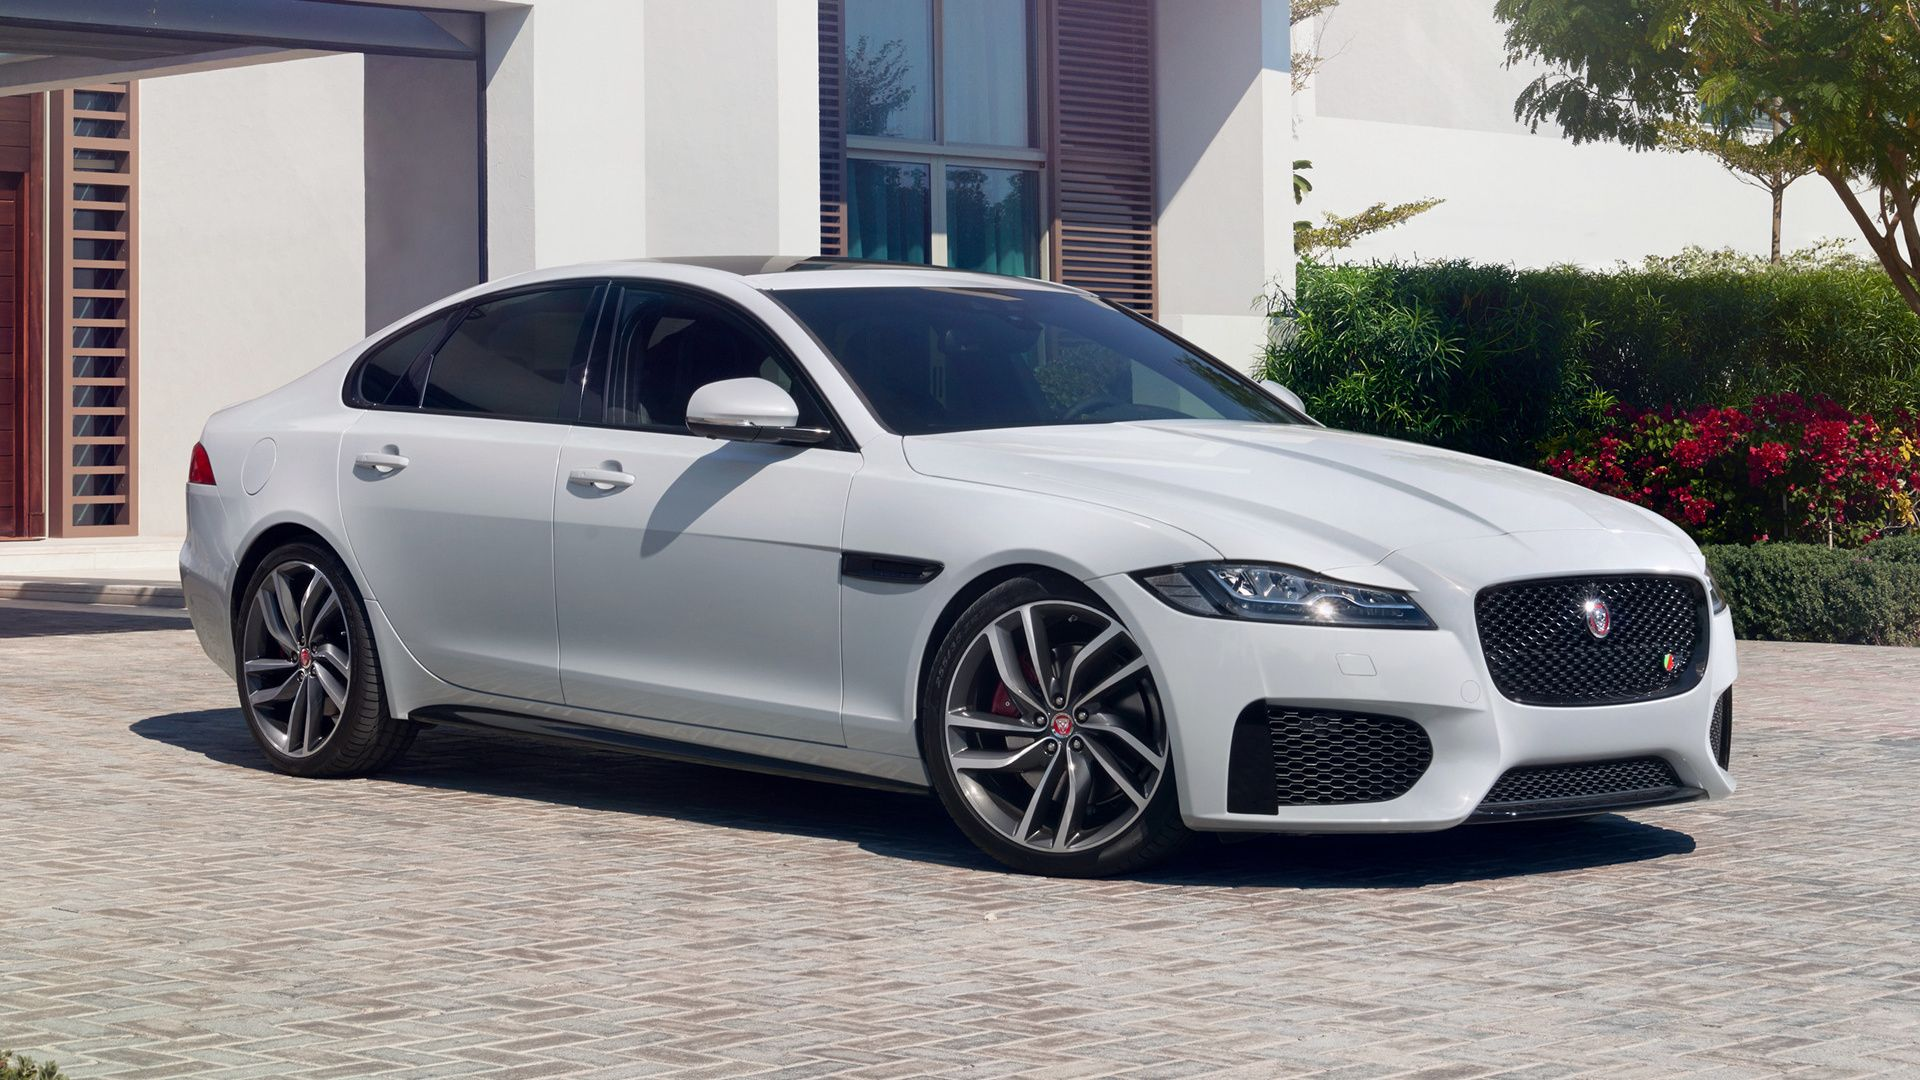 2015 Jaguar XF Review and Price - This will be a very good idea ...